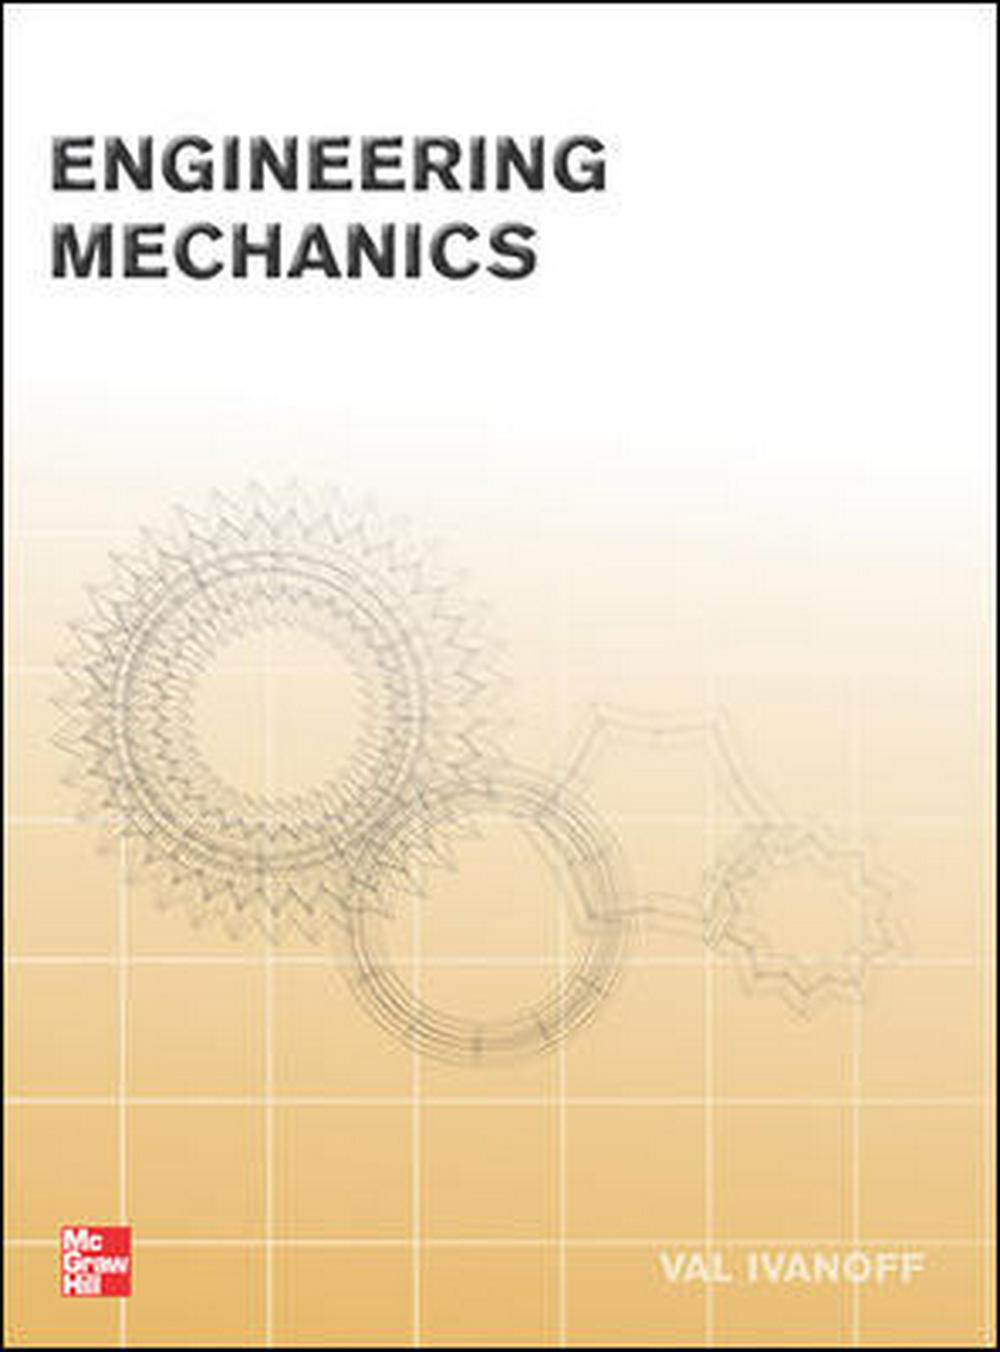 Engineering Mechanics by Val Ivanoff, ISBN: 9780071010030